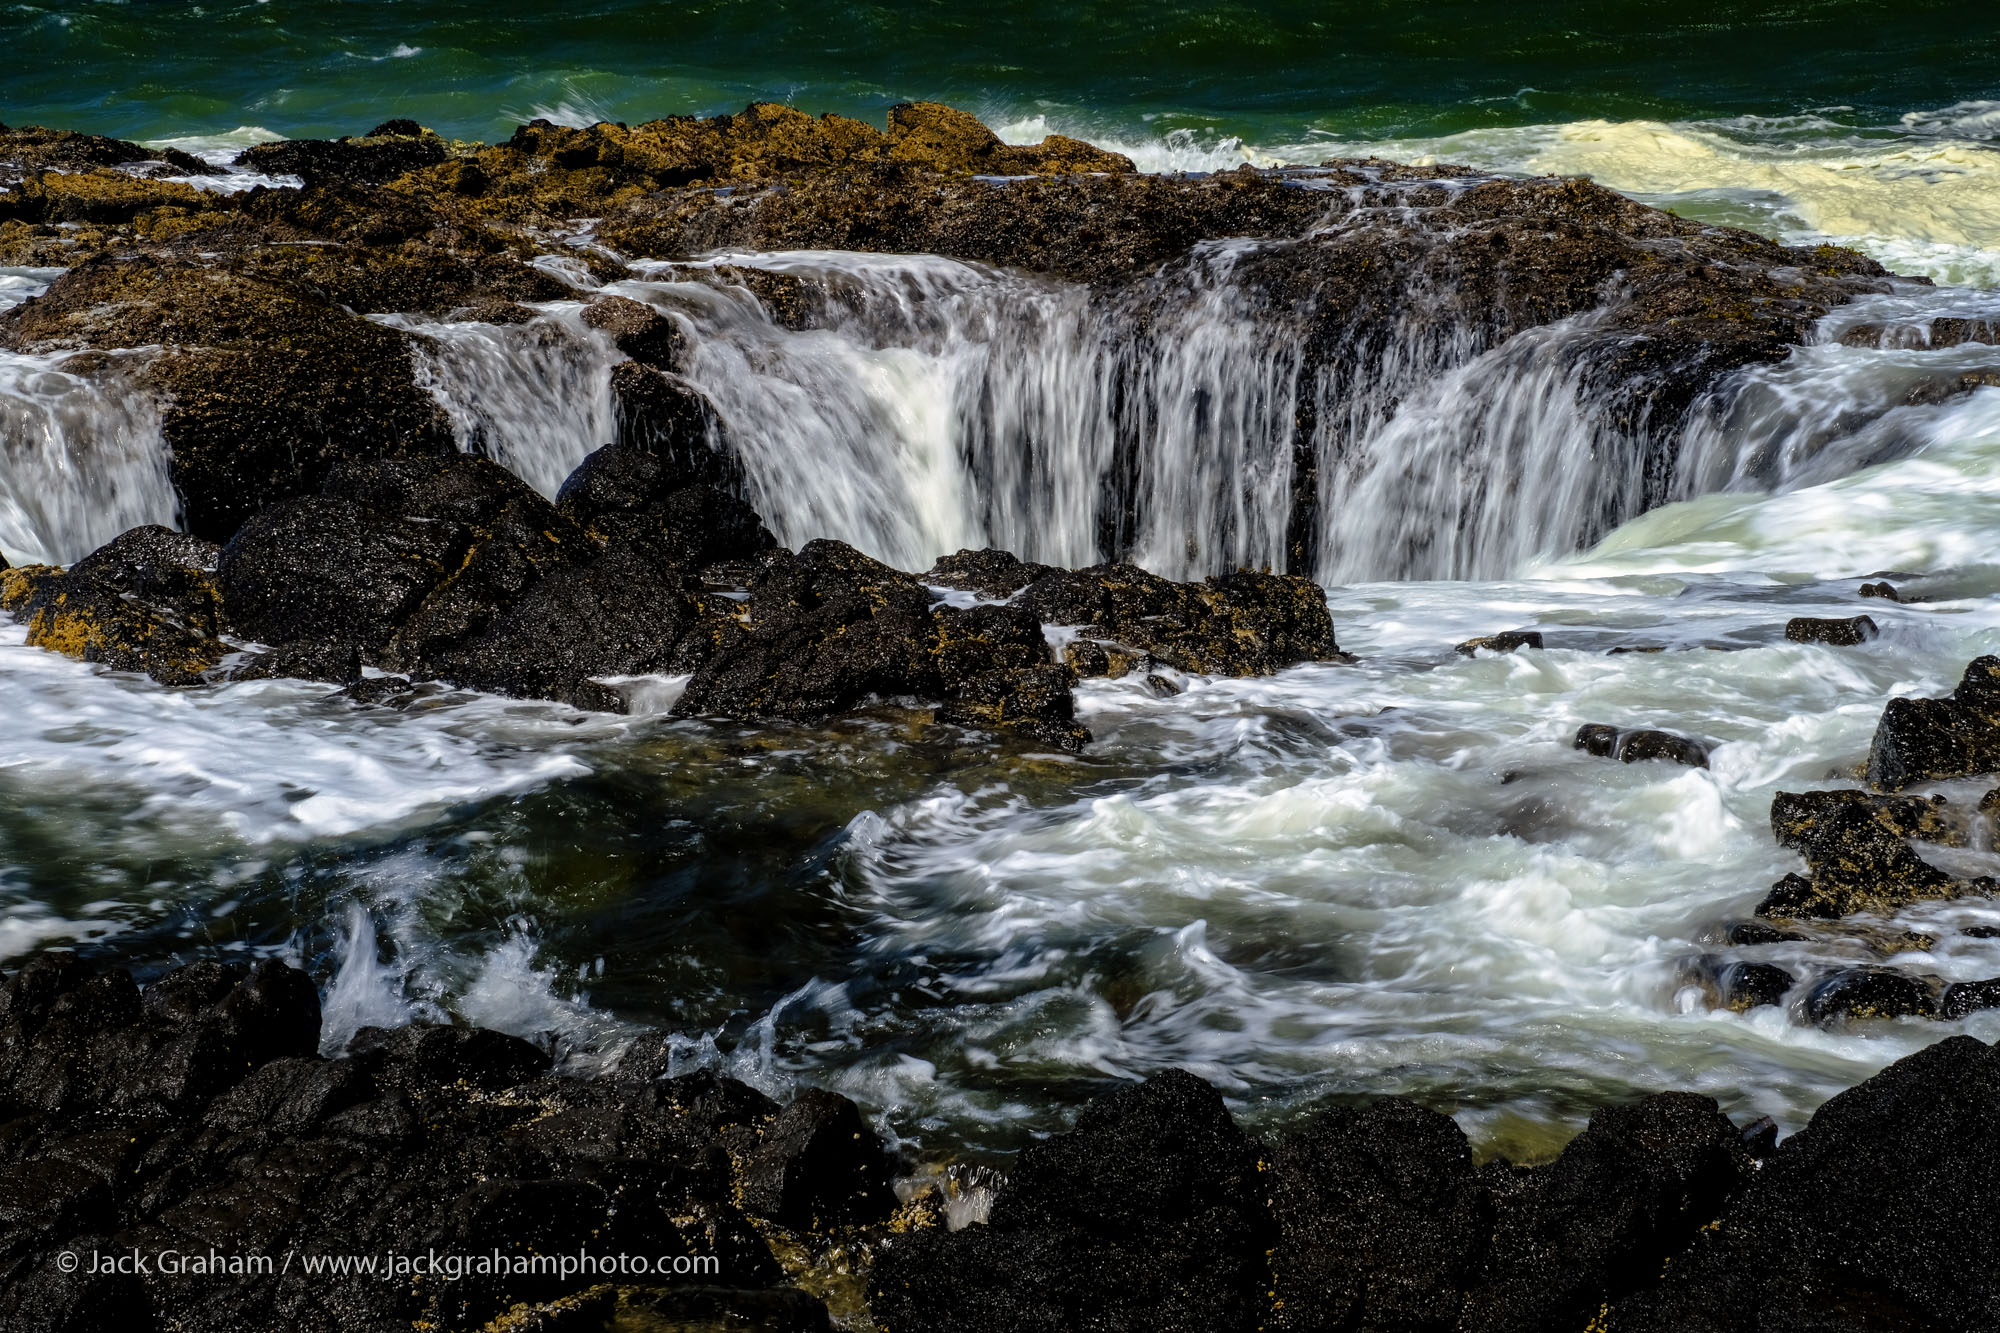 IMAGES FROM THE FUJI X-T2 | Jack Graham Photography